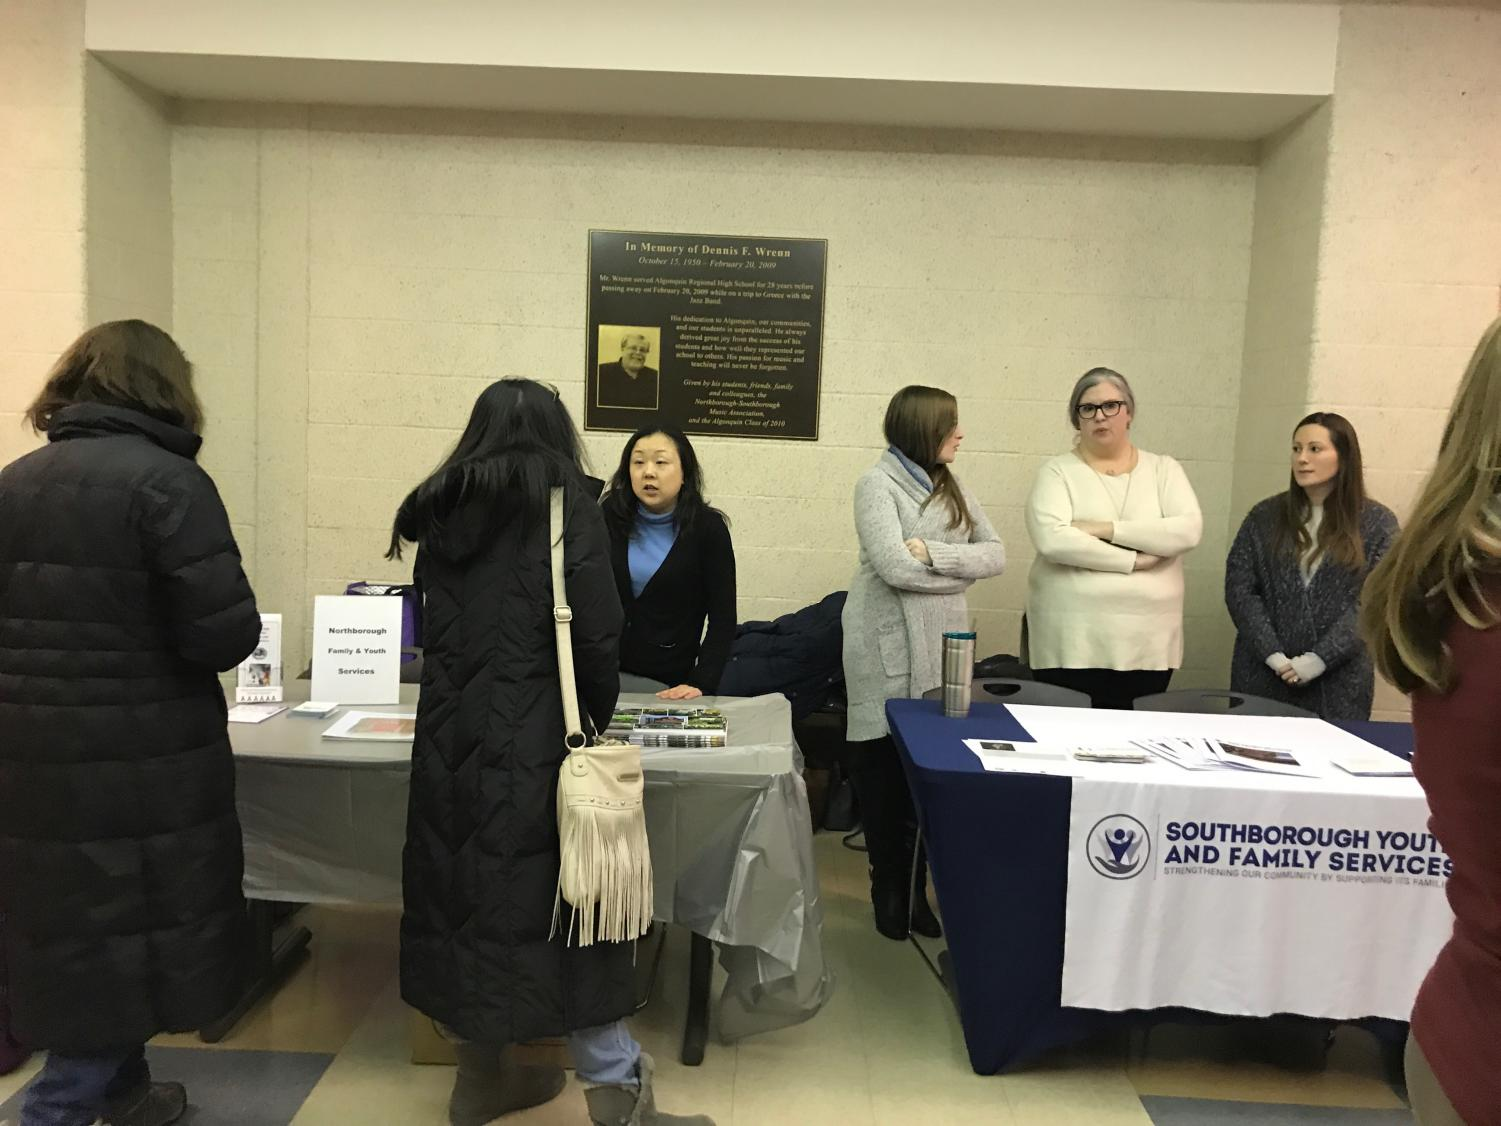 Local organization Southborough Youth and Family Services set up a booth outside of the auditorium where they informed parents of their available services, including addiction support and counseling free of charge for residents of Northborough and Southborough.